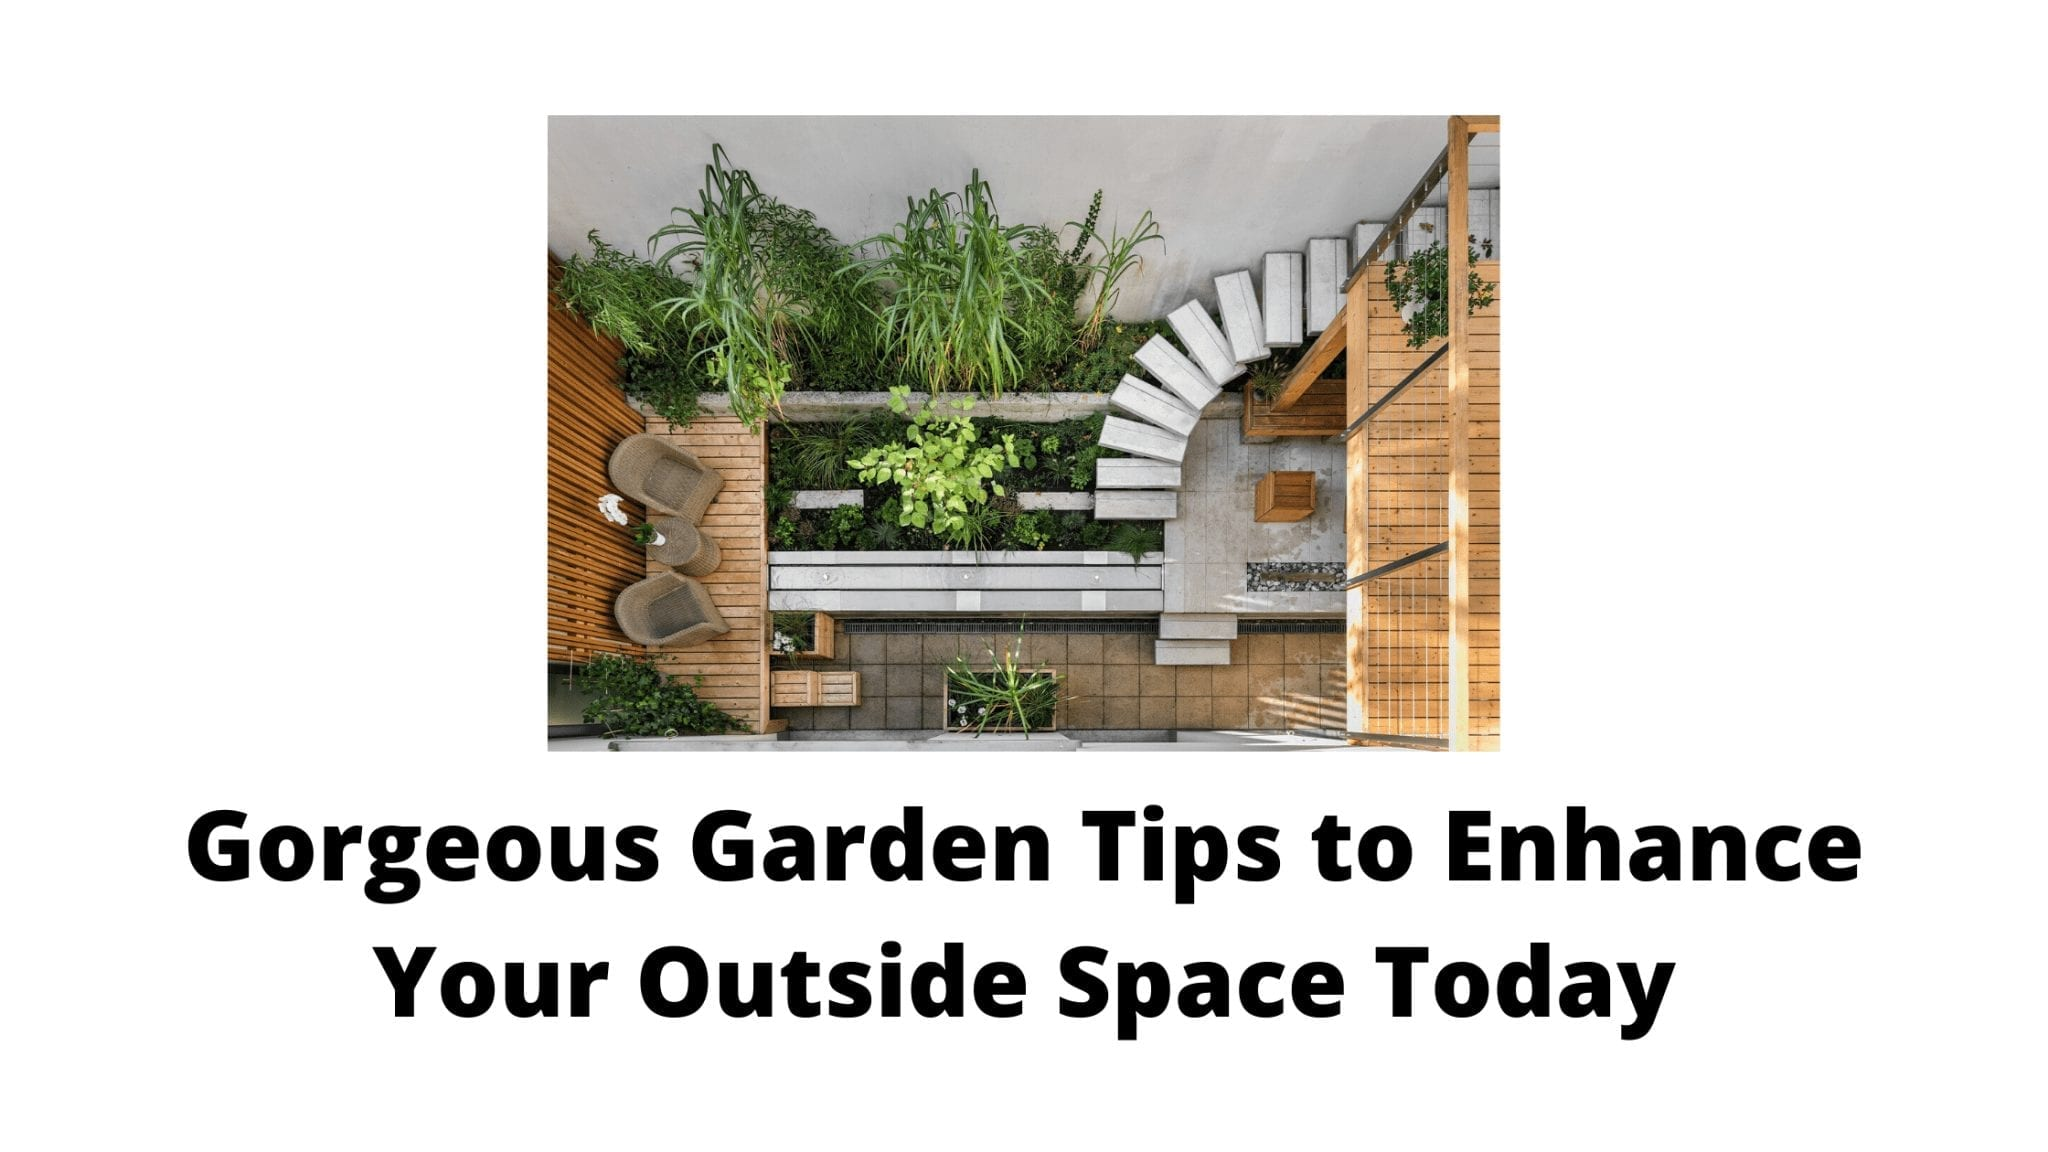 Gorgeous Garden Tips to Enhance Your Outside Space Today